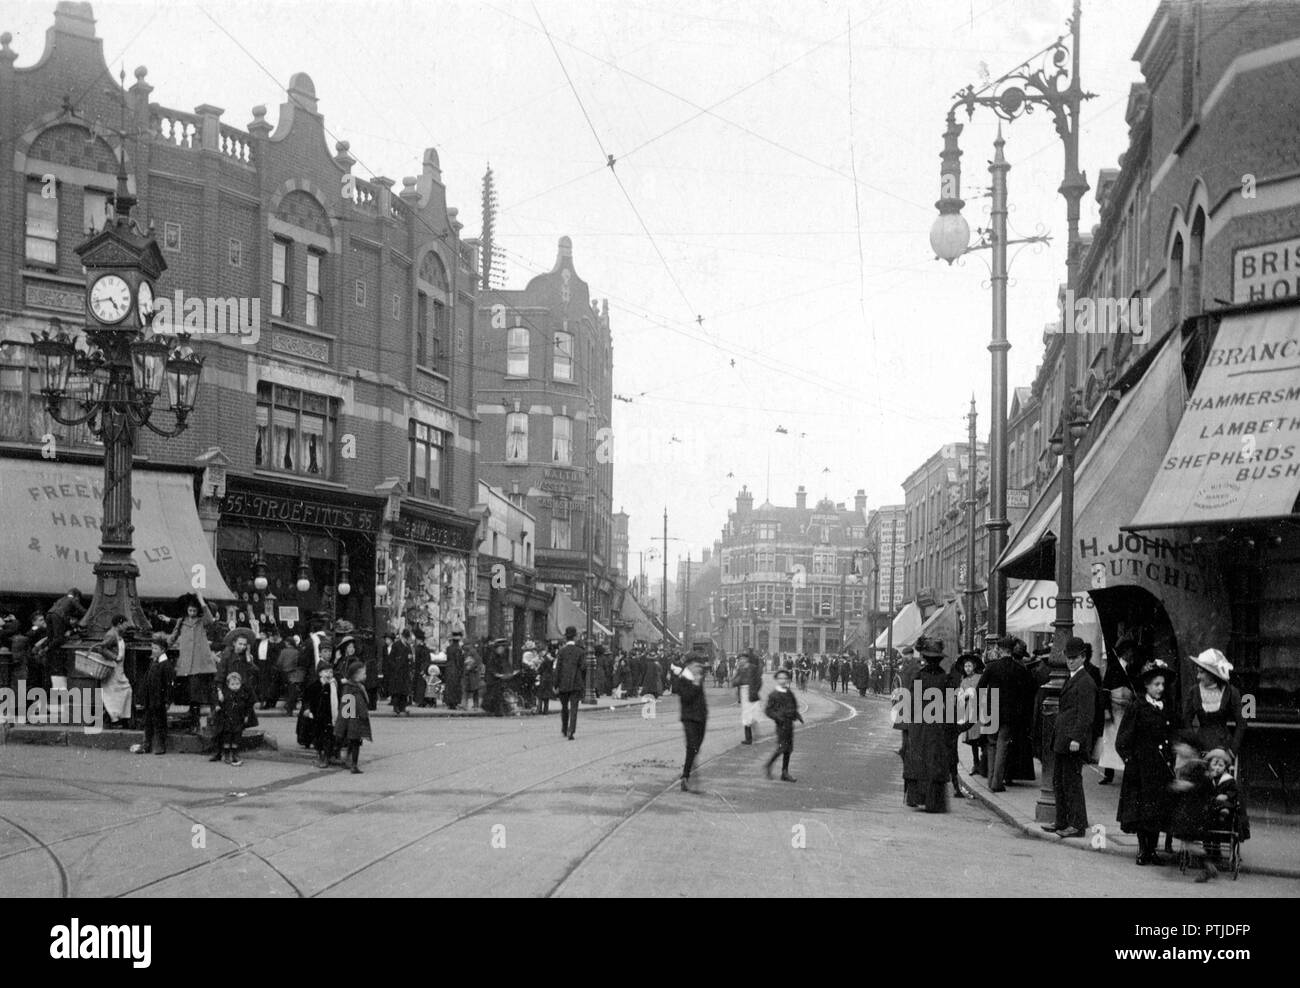 High Street, Harlesden, London early 1900's - Stock Image